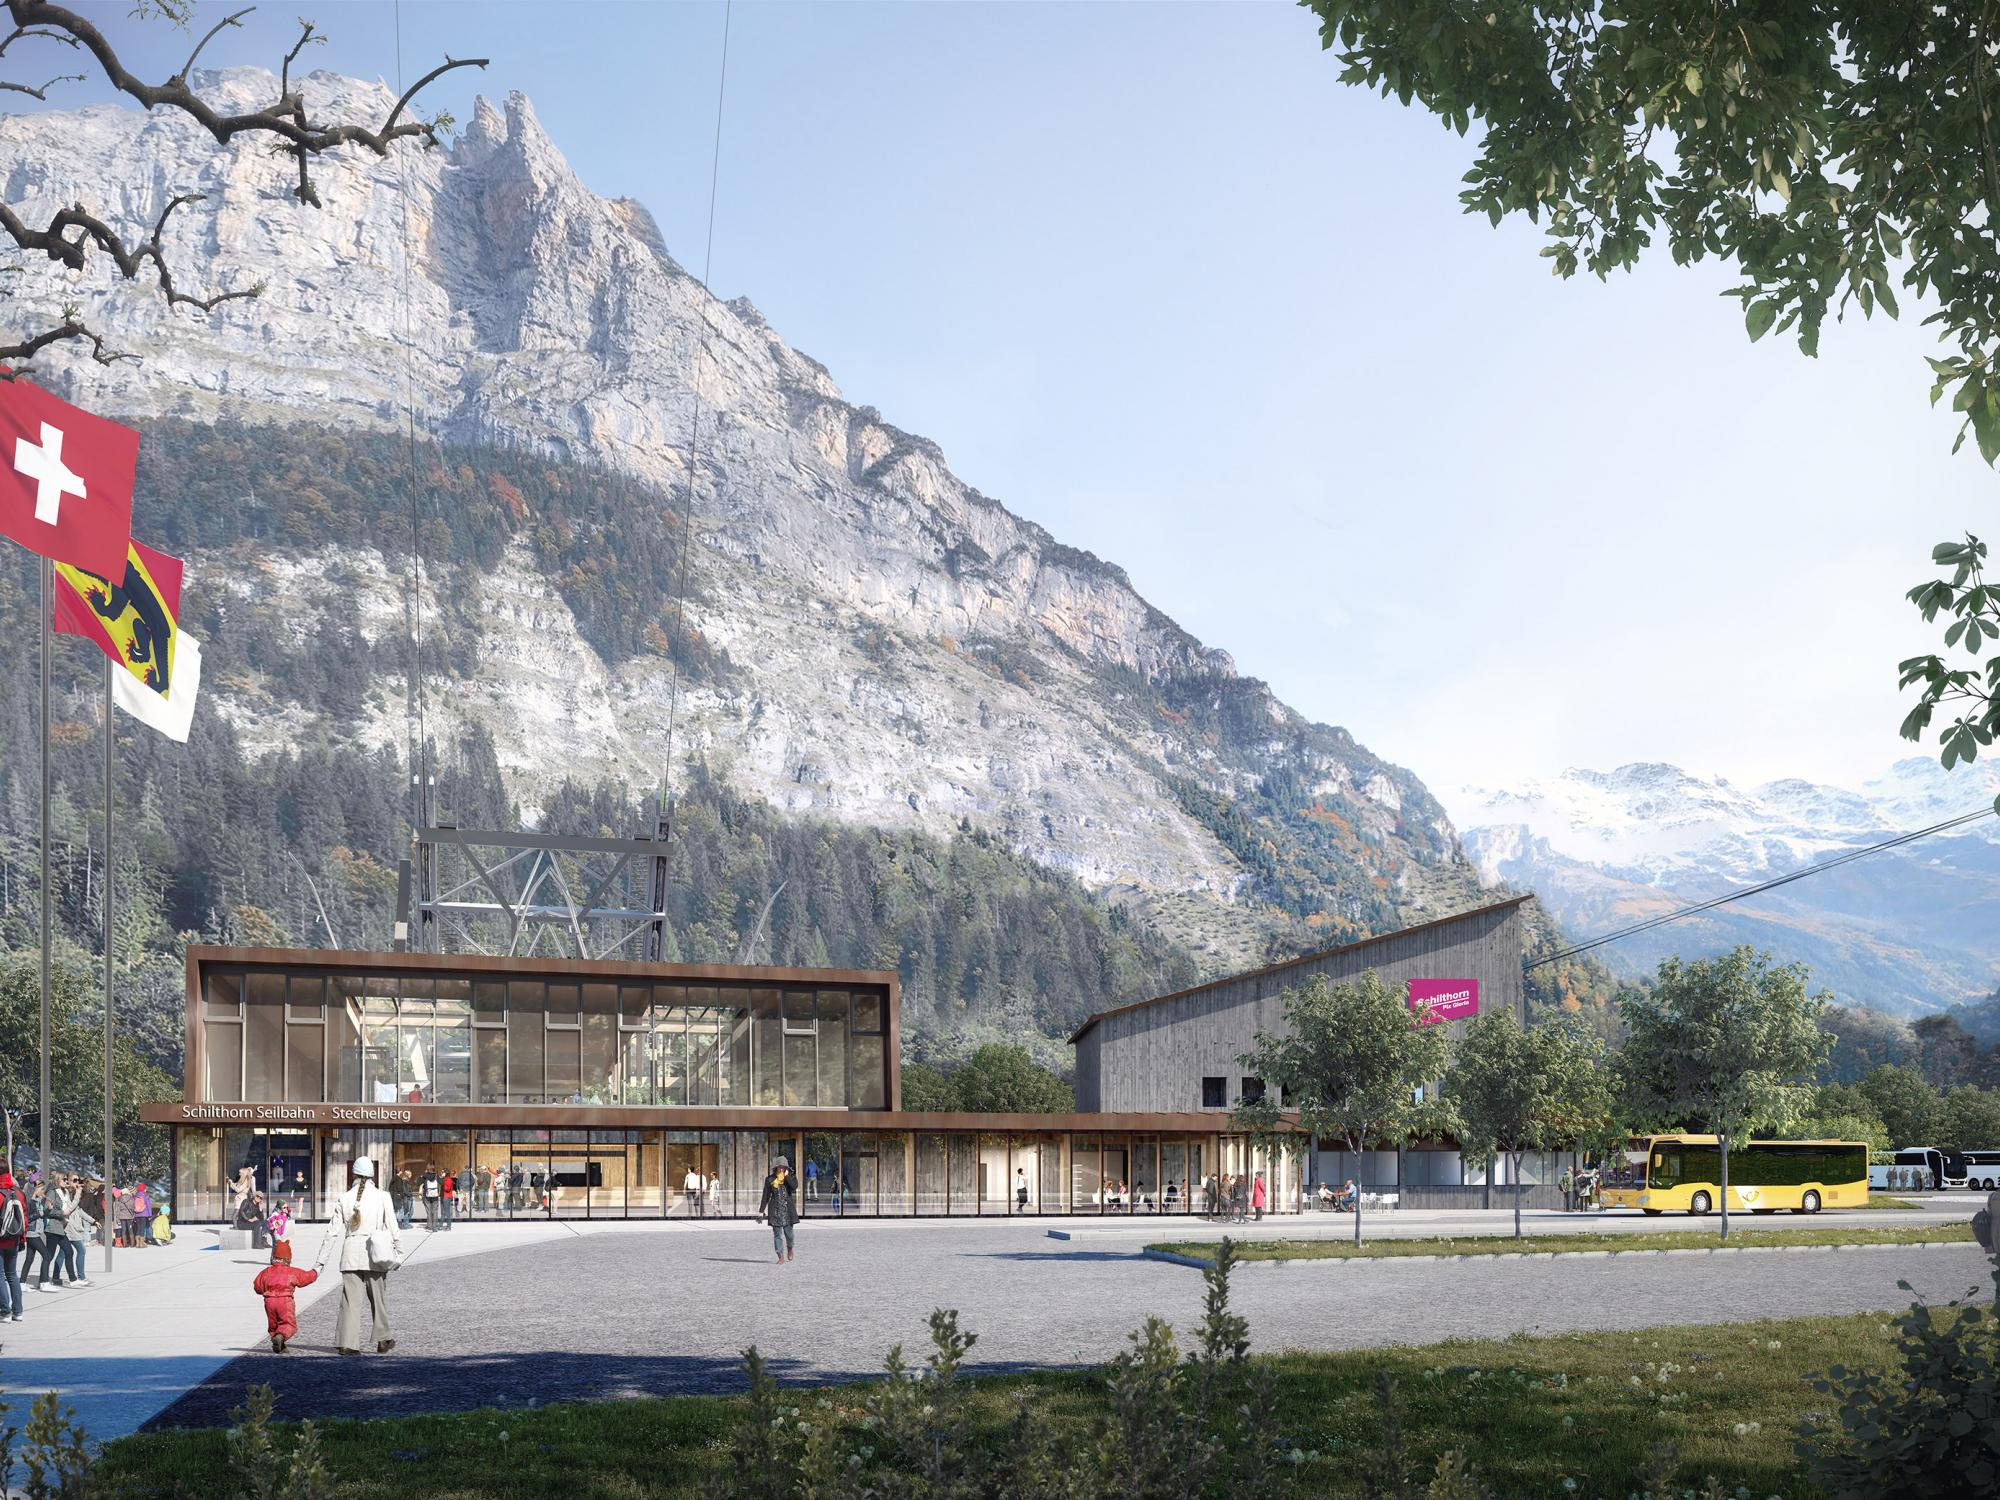 schilthornbahn20xx stechelberg webalbum start - A new cableway for Piz Gloria